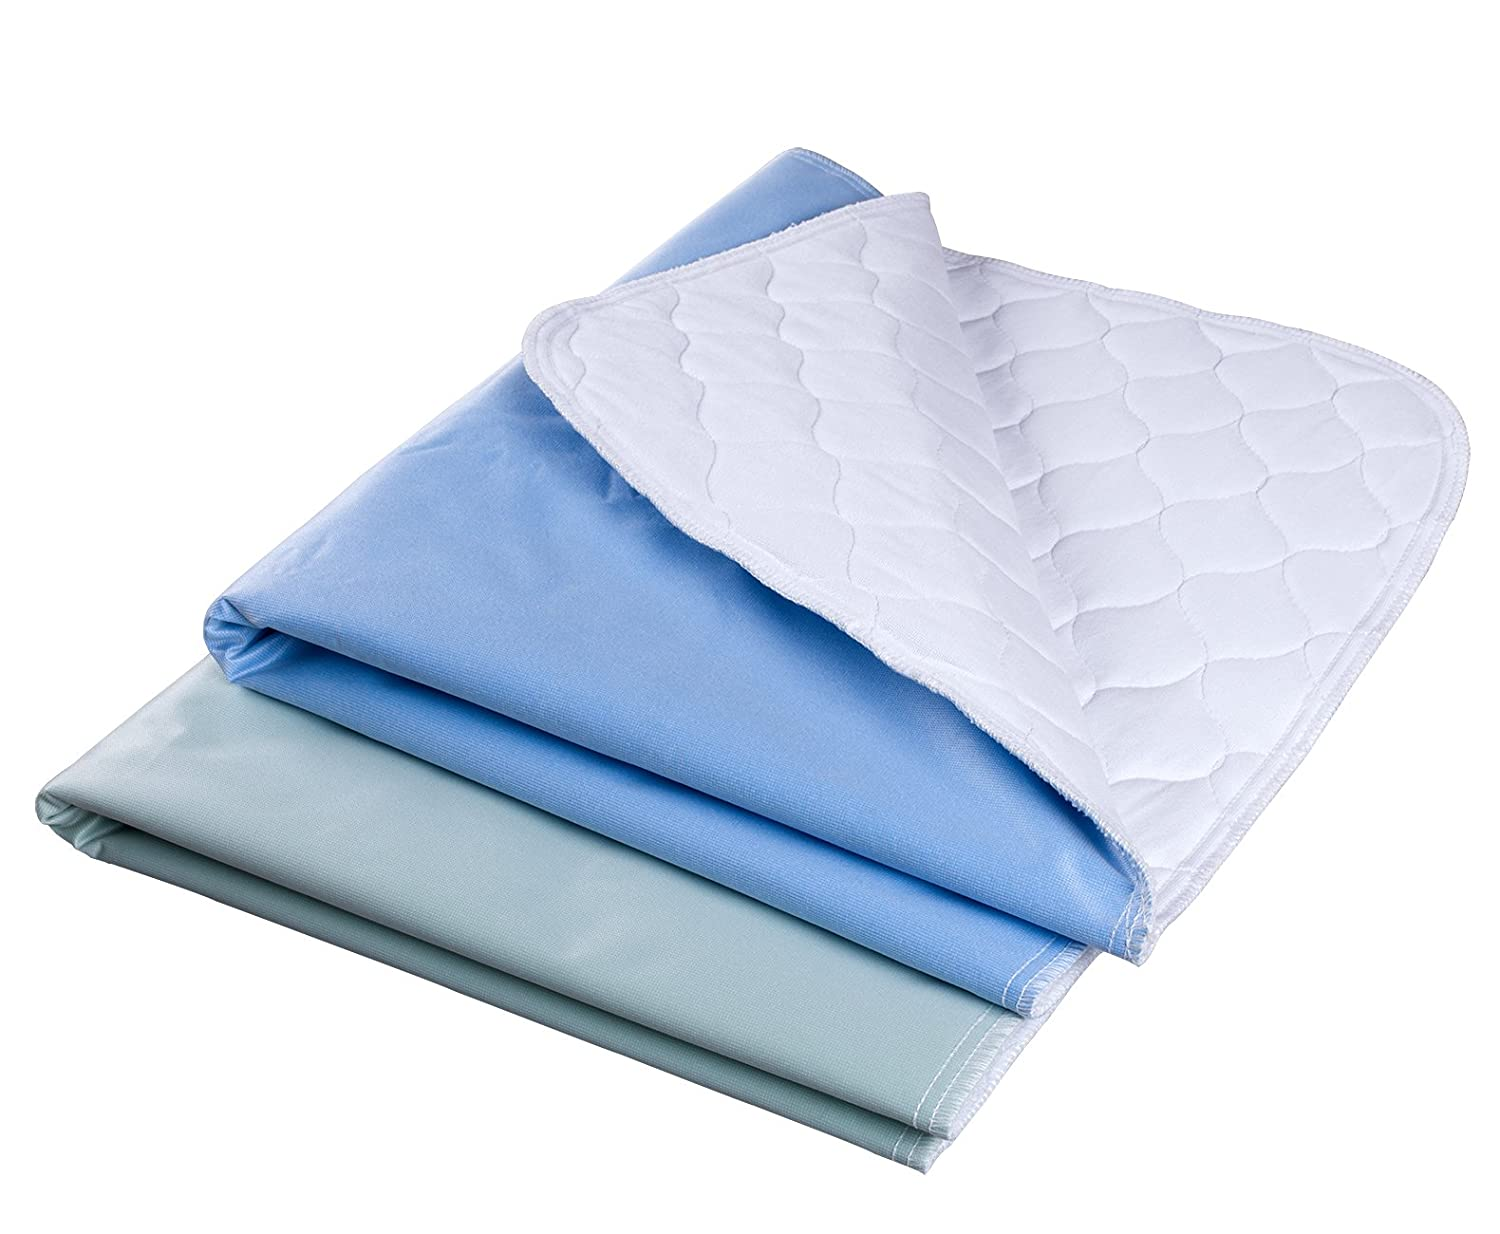 Top 5 Best Waterproof Mattress Pads and Protectors in 2019 Reviews